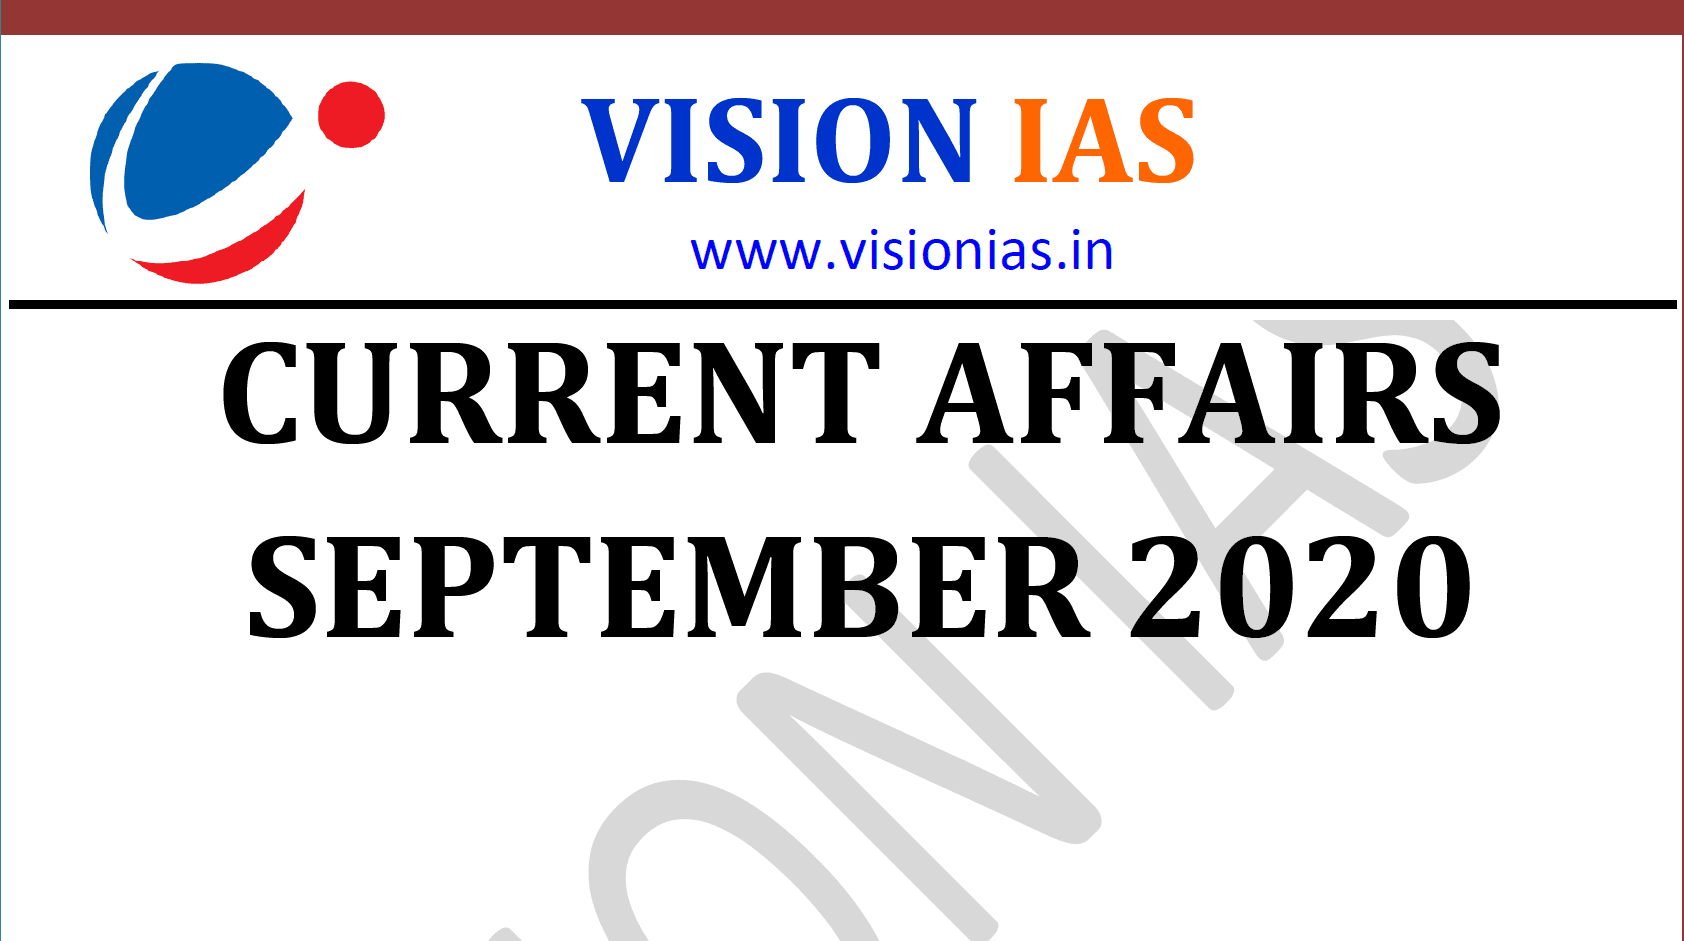 Vision IAS Current Affairs September 2020 pdf